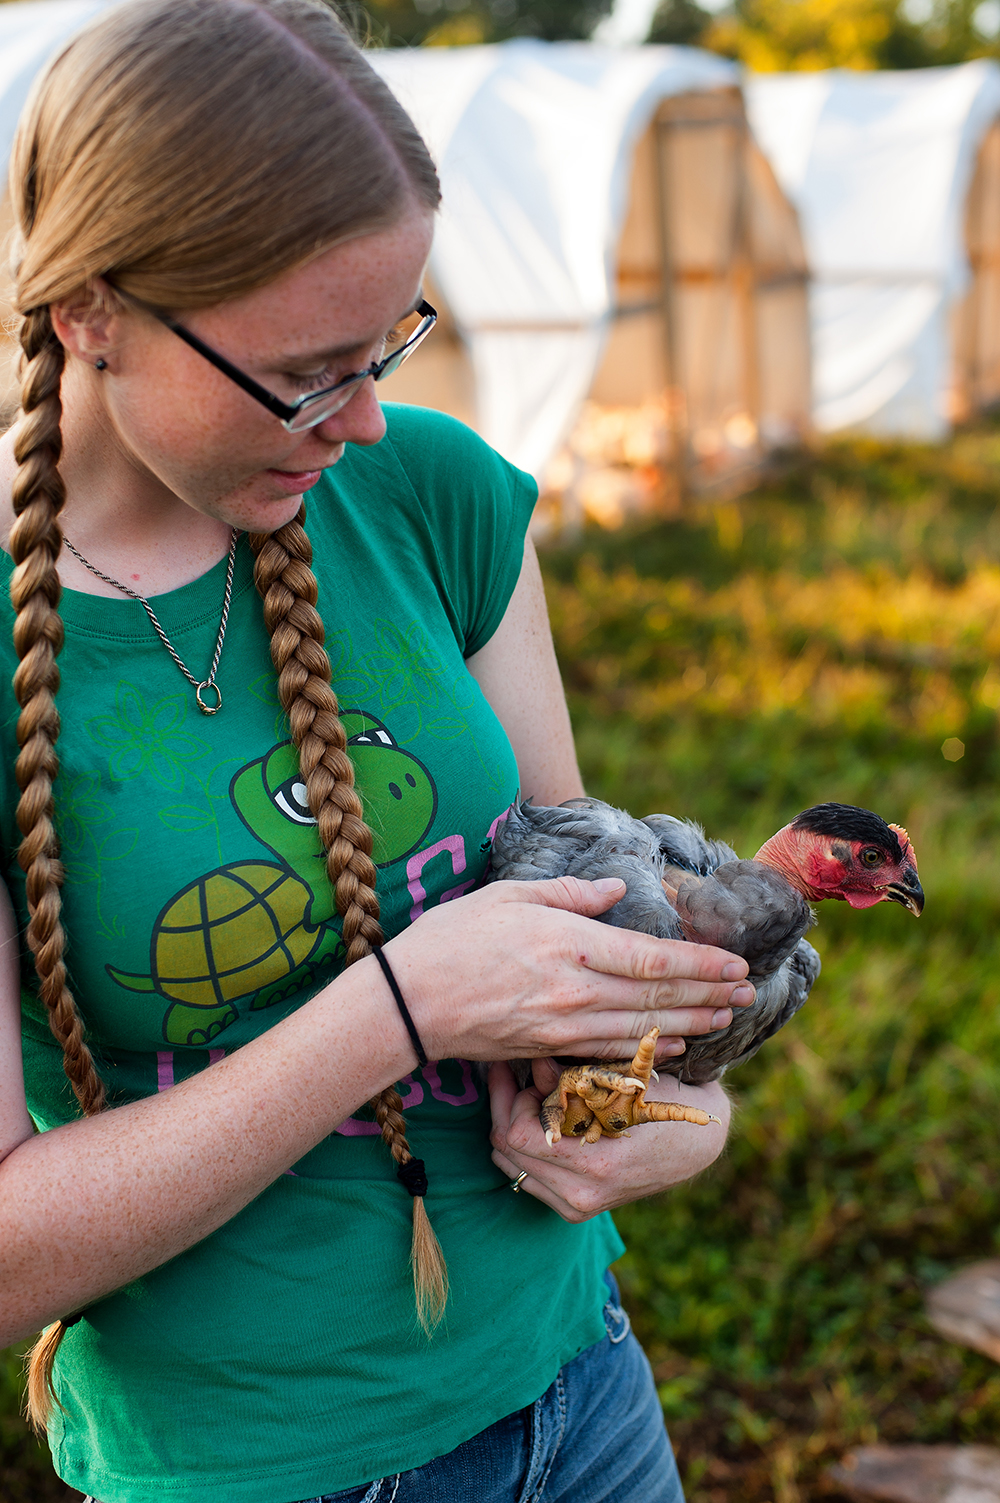 Just after sunrise, Kerry Harrington and her husband tend to the 300 broiler chickens they are raising.